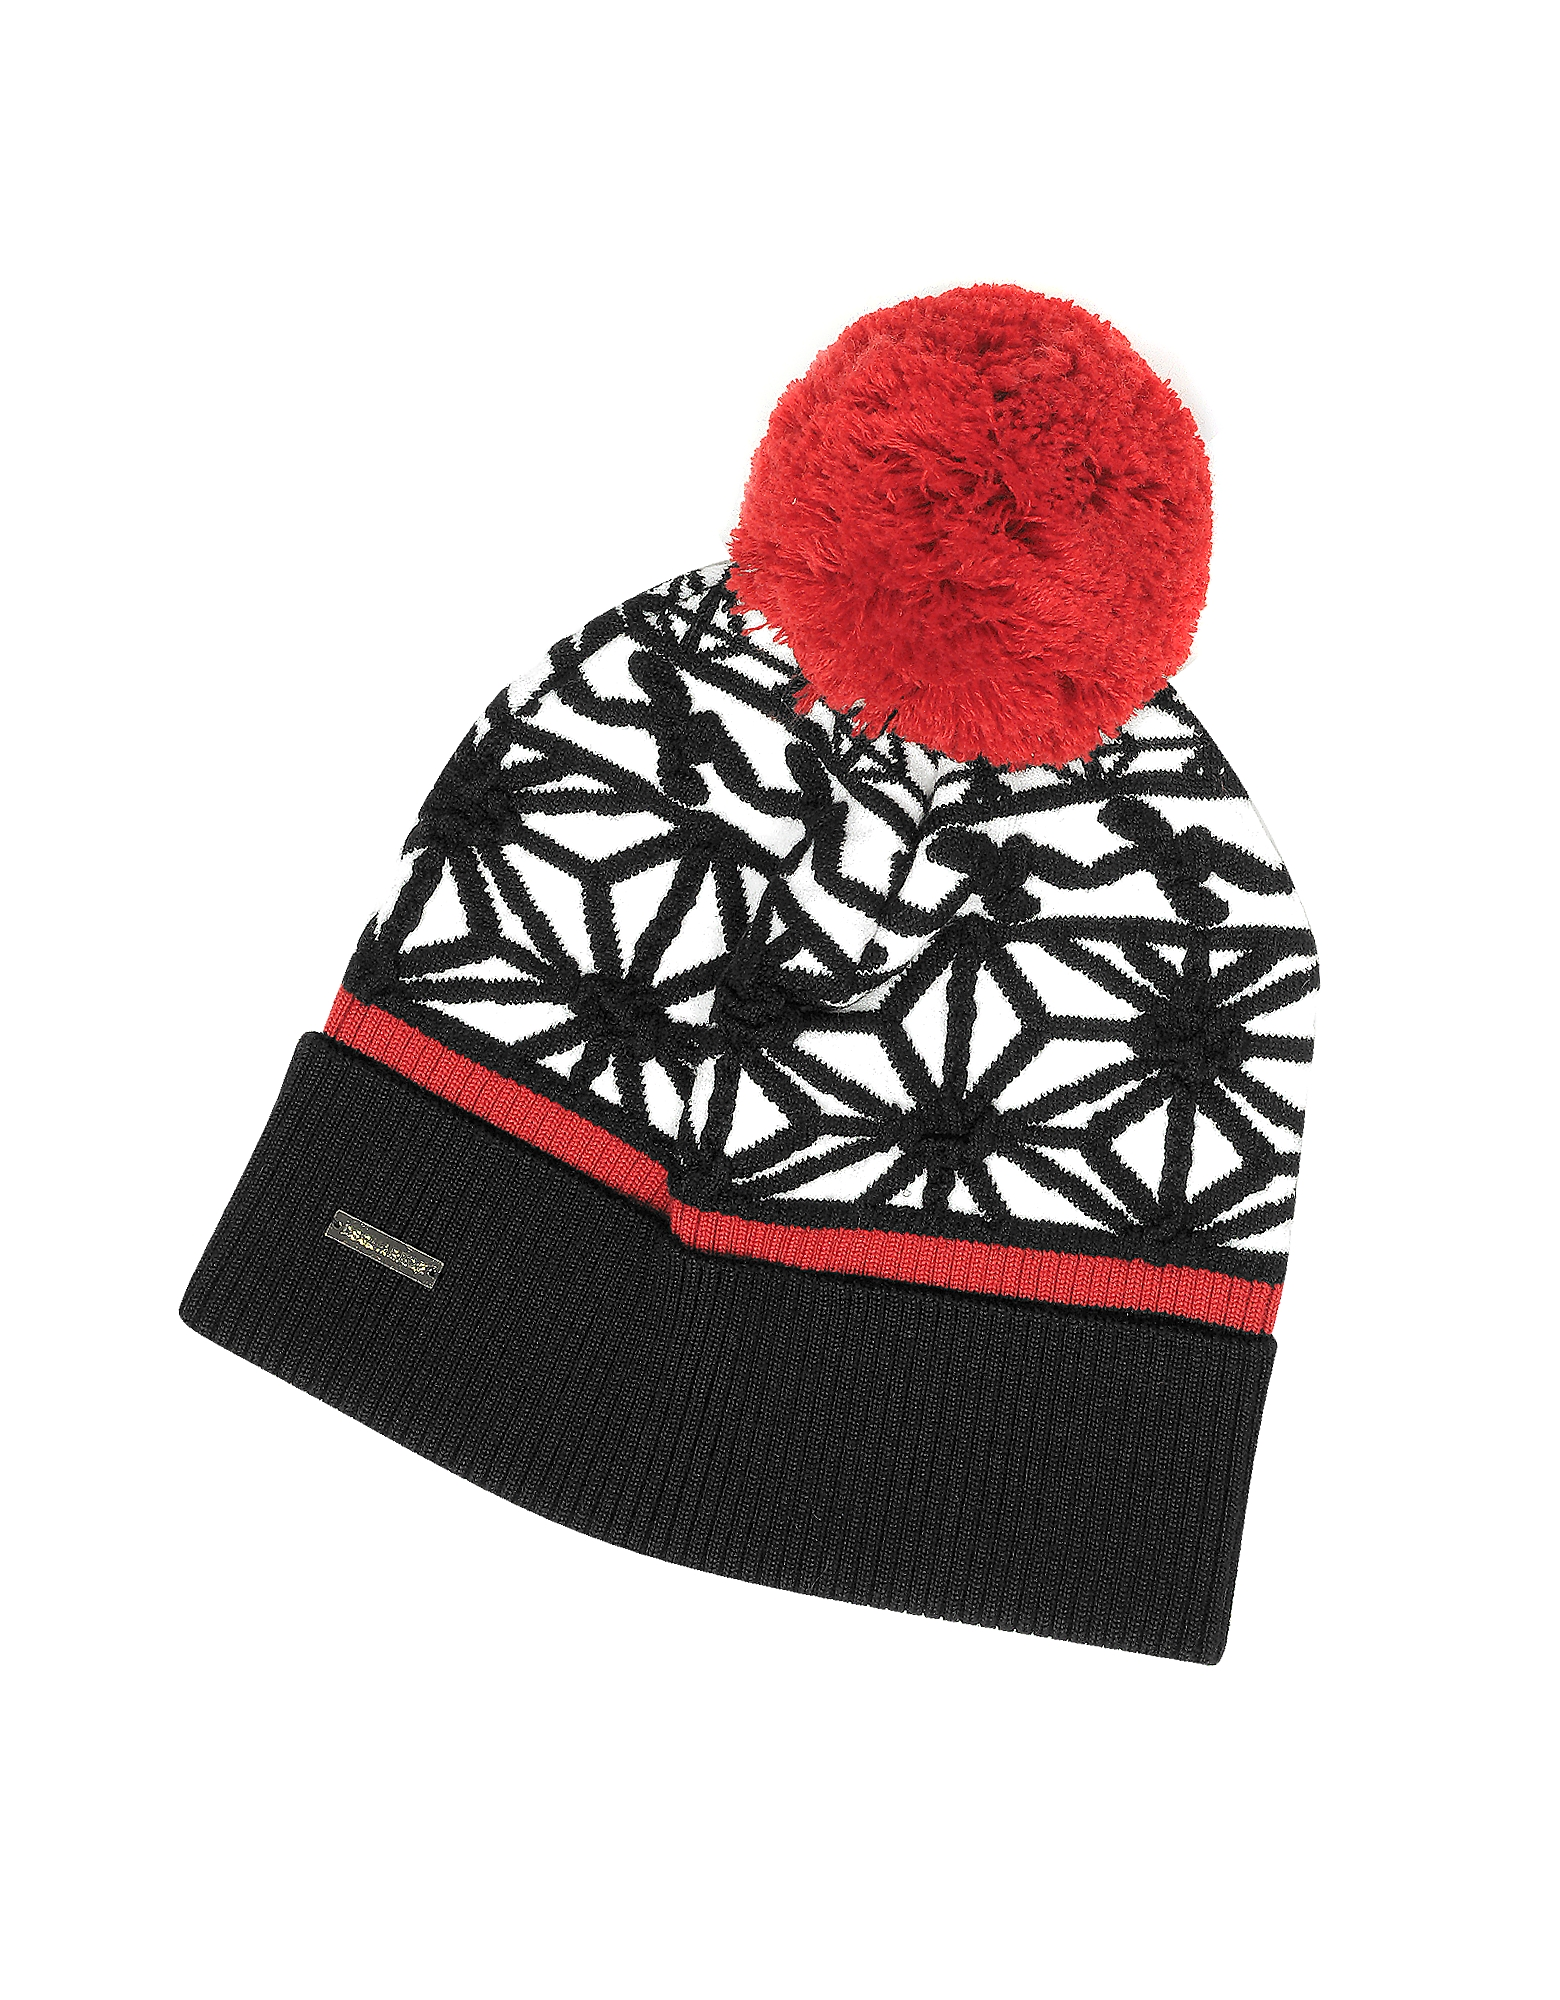 Black & White Knit Hat w/Red Pom Pom от Forzieri.com INT